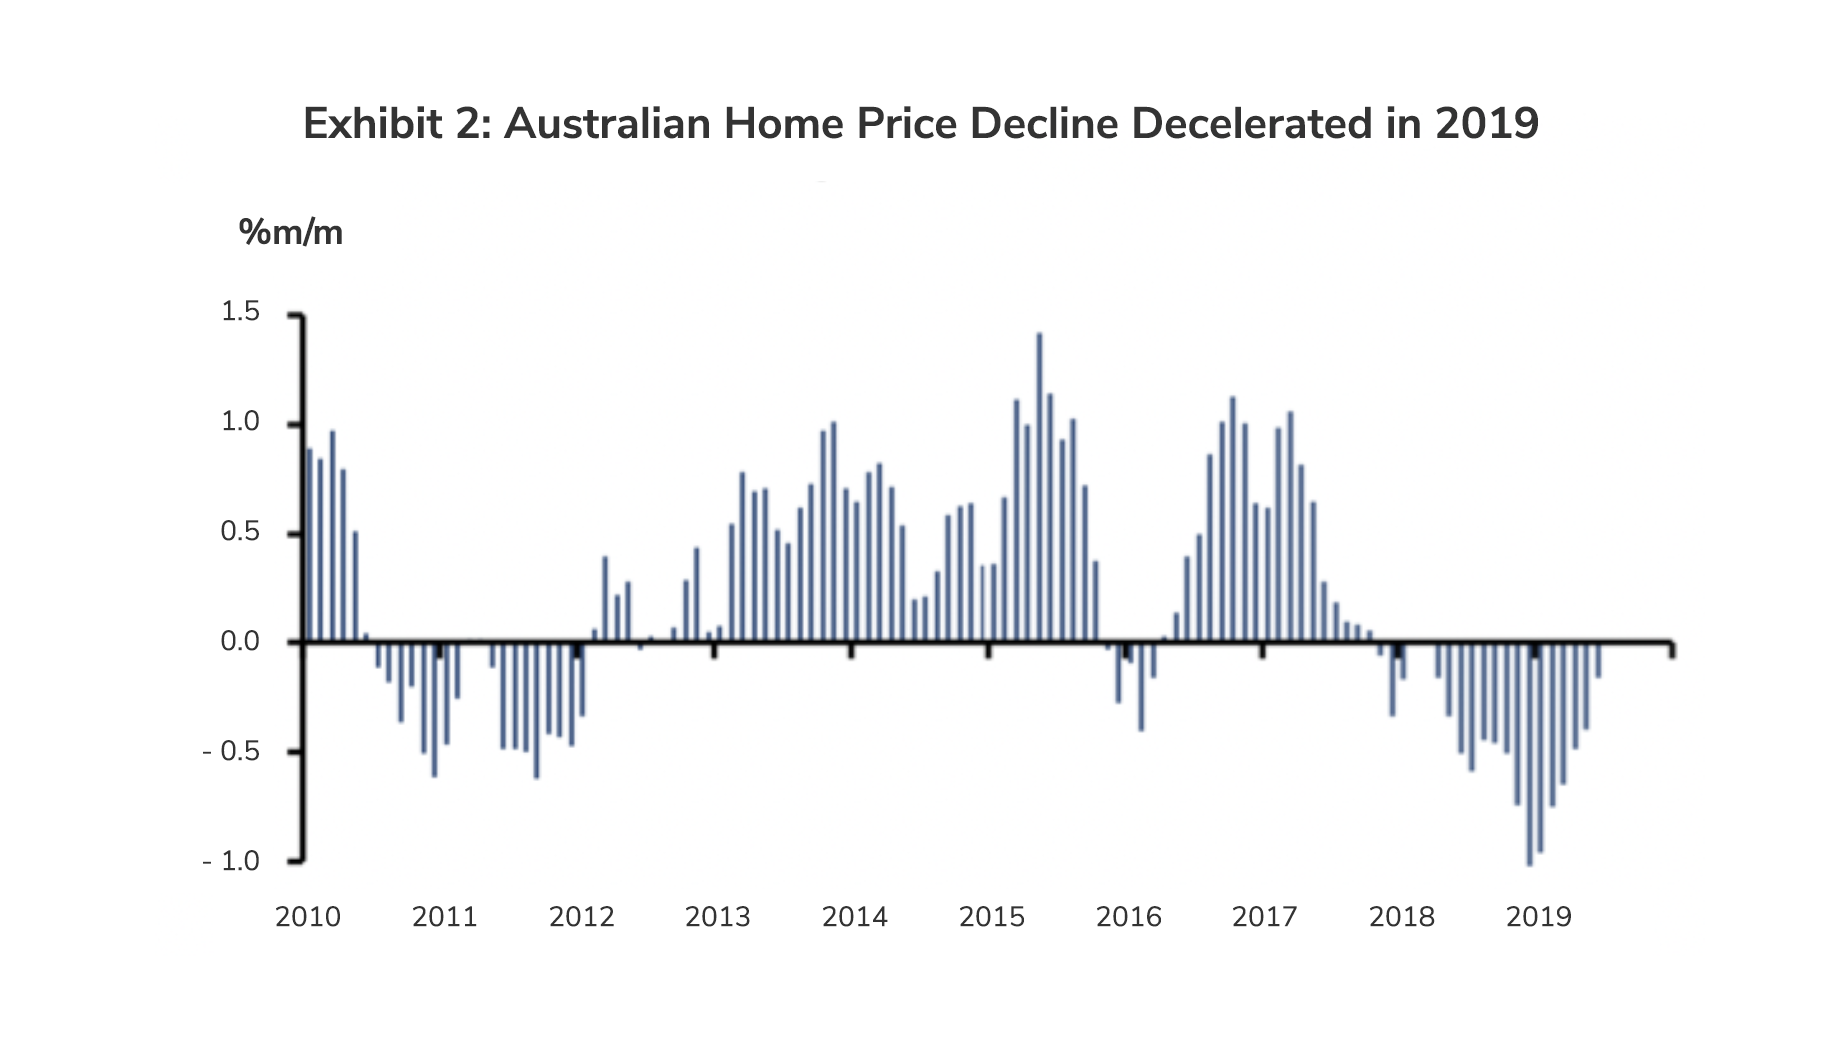 Australian Home Price Decline Decelerated in 2019